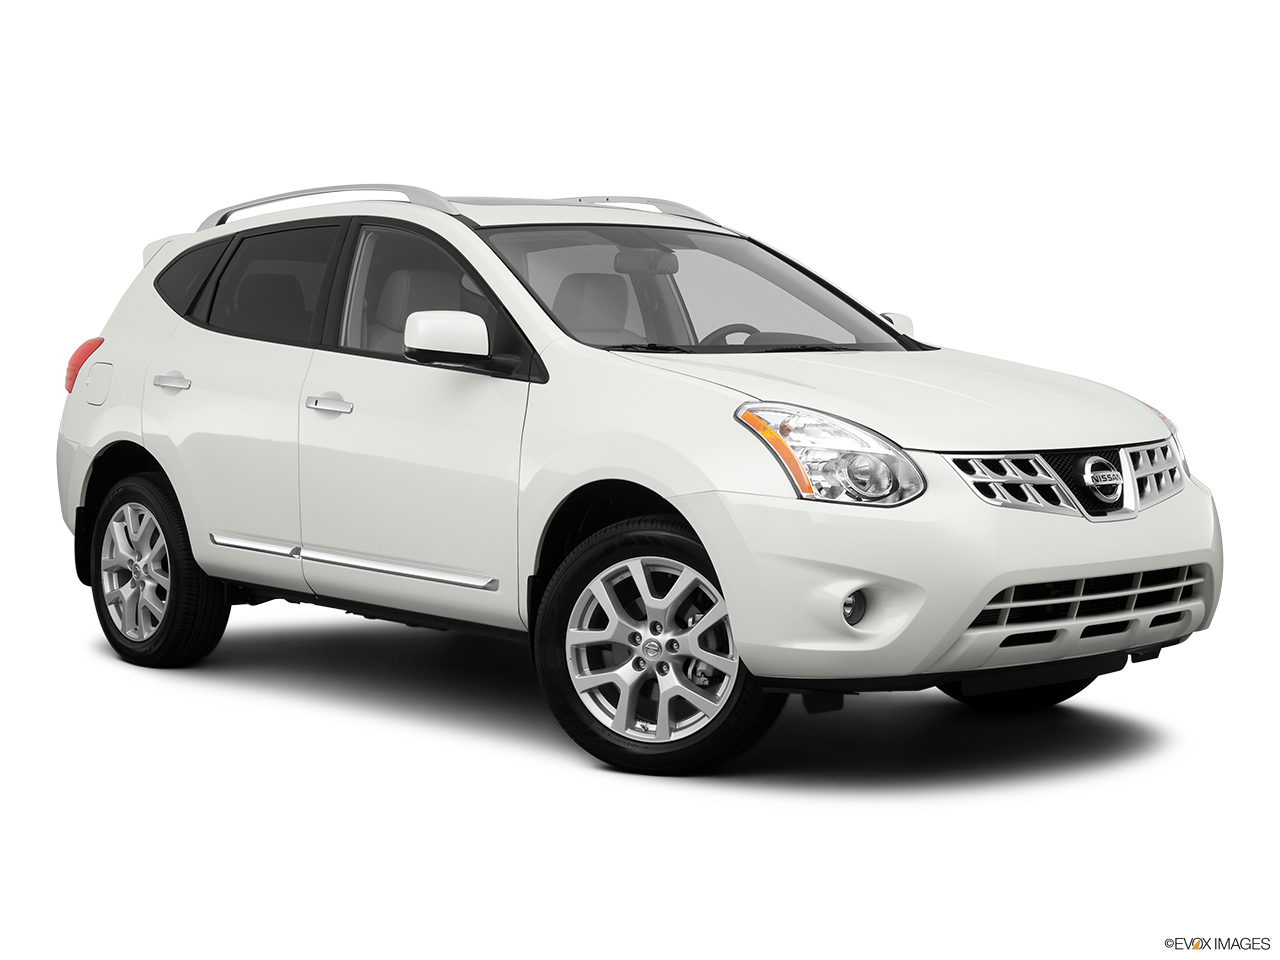 2014 nissan rogue fwd sv carnowcom for Nissan rogue sv invoice price